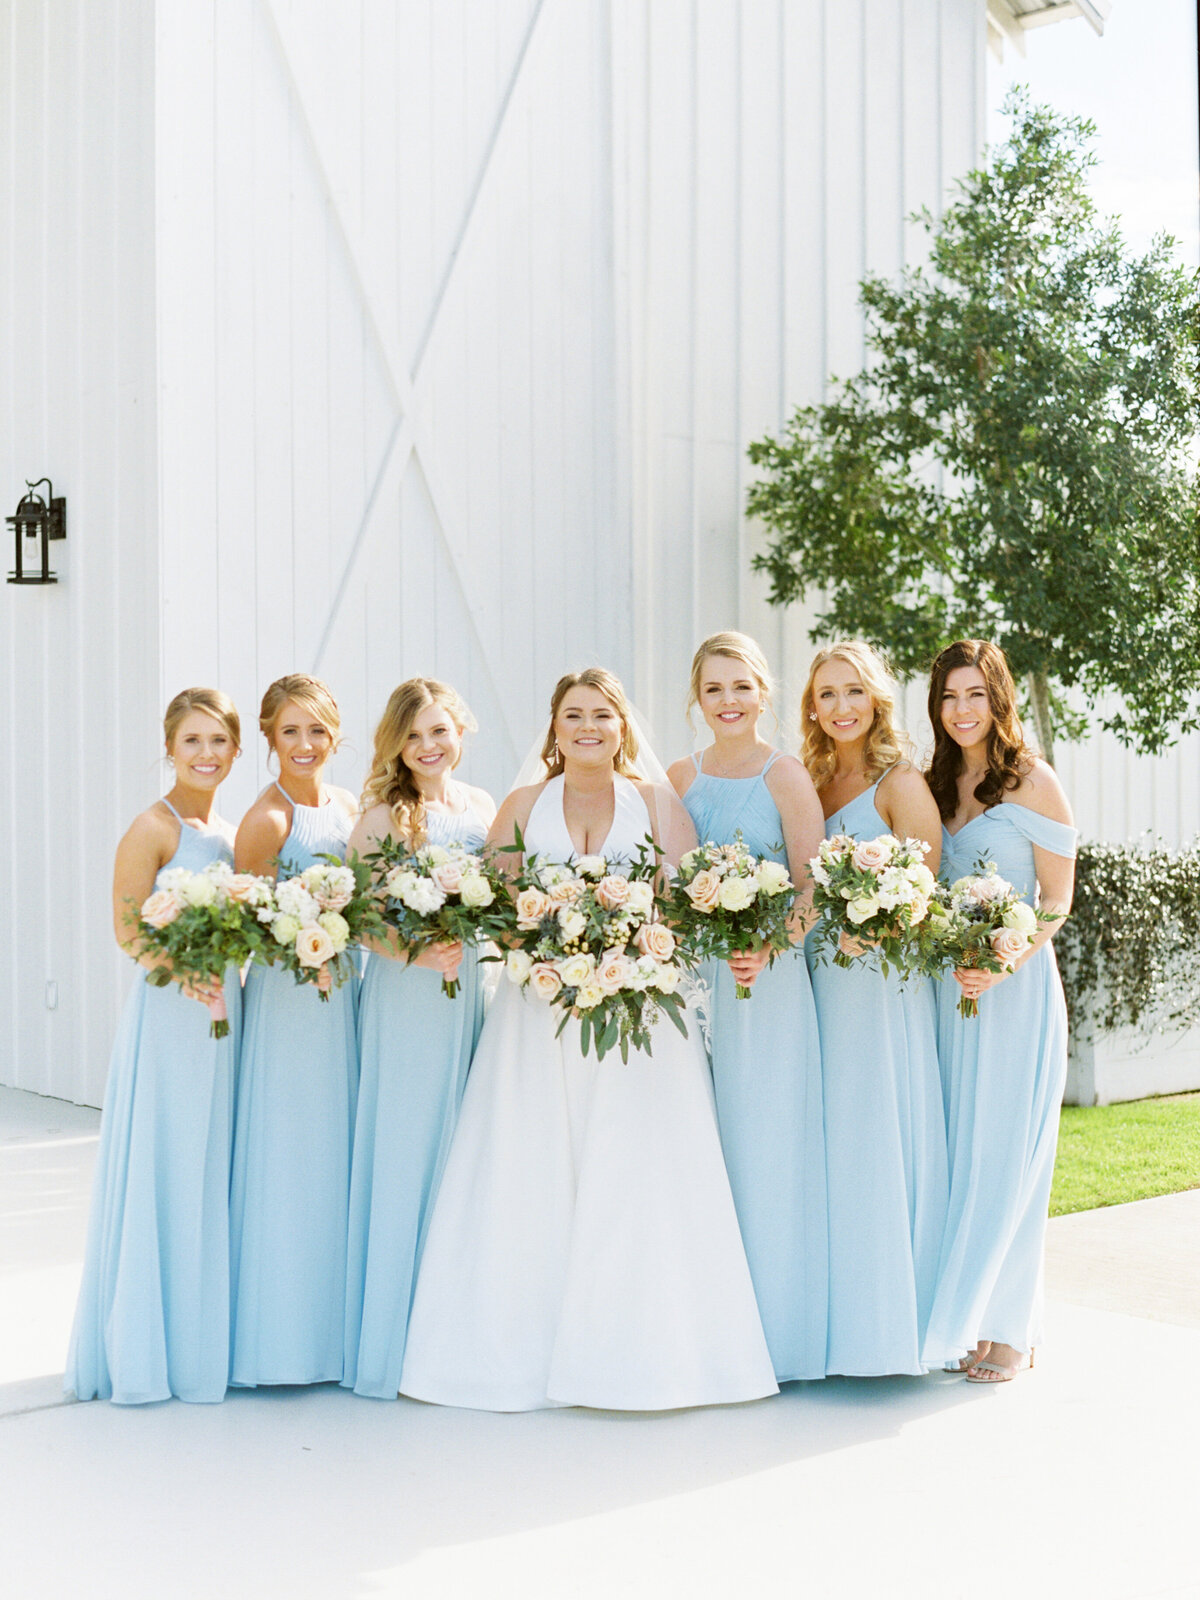 the-farmhouse-wedding-houston-texas-wedding-photographer-mackenzie-reiter-photography-10